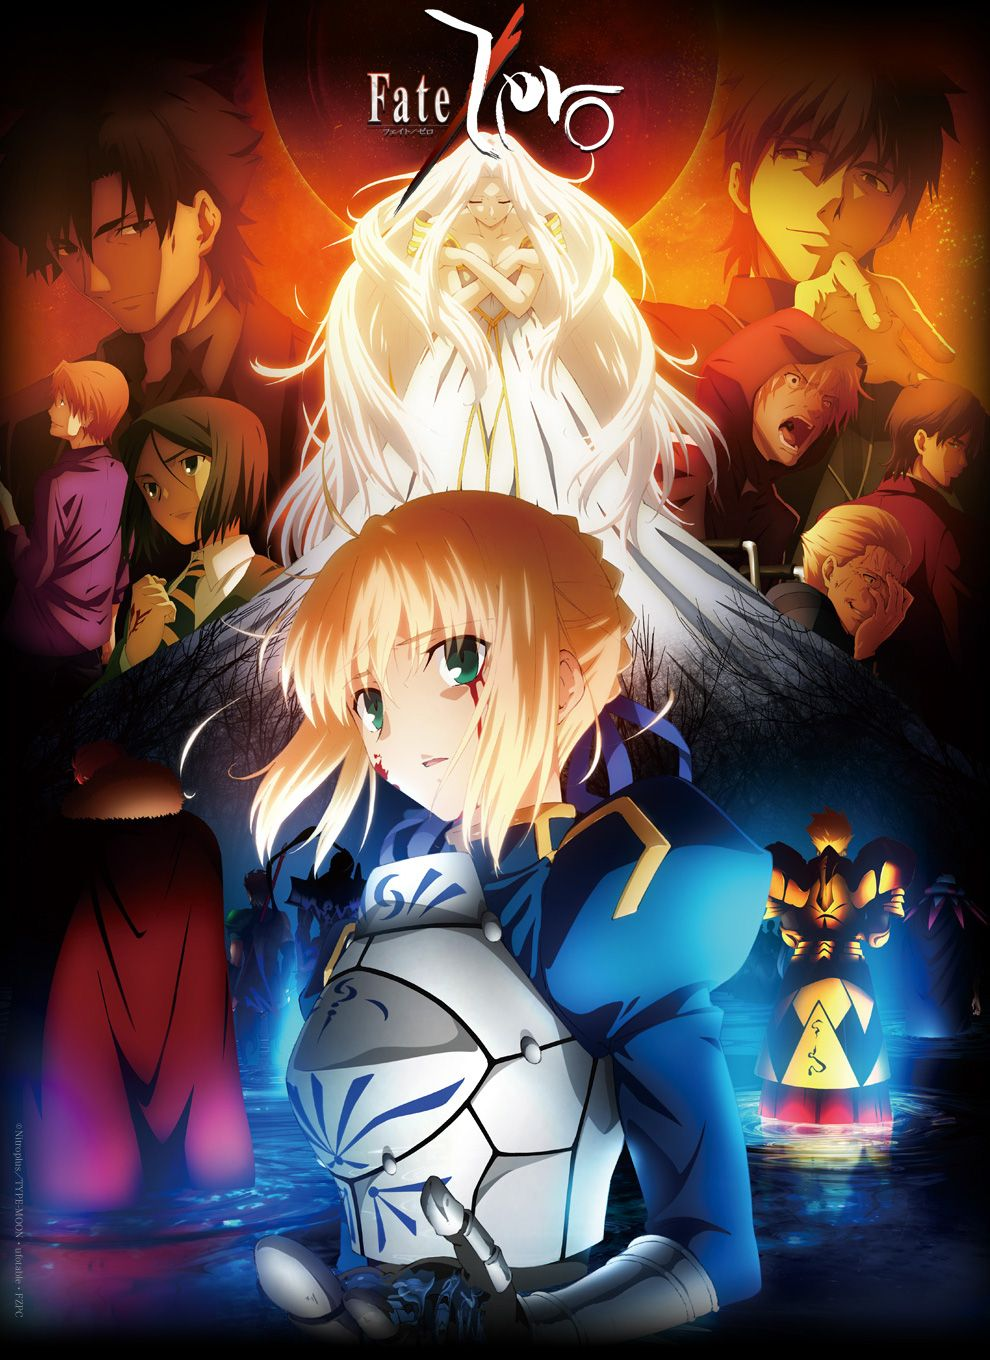 Fate/Zero Proving once again that with great writing and